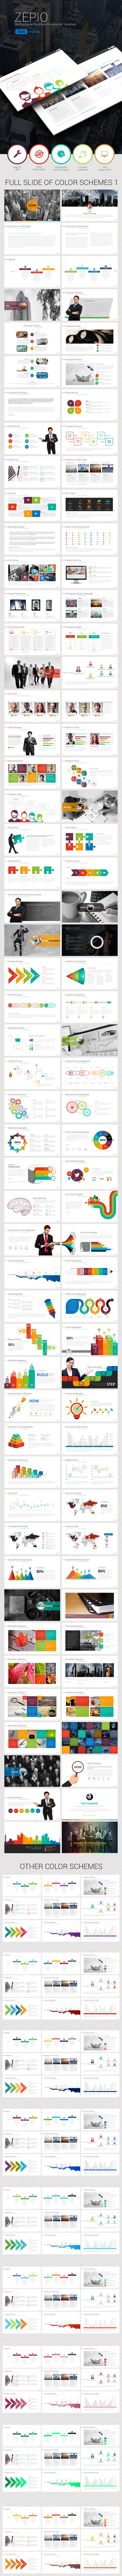 Zepio - Business Powerpoint Template - Business PowerPoint Templates